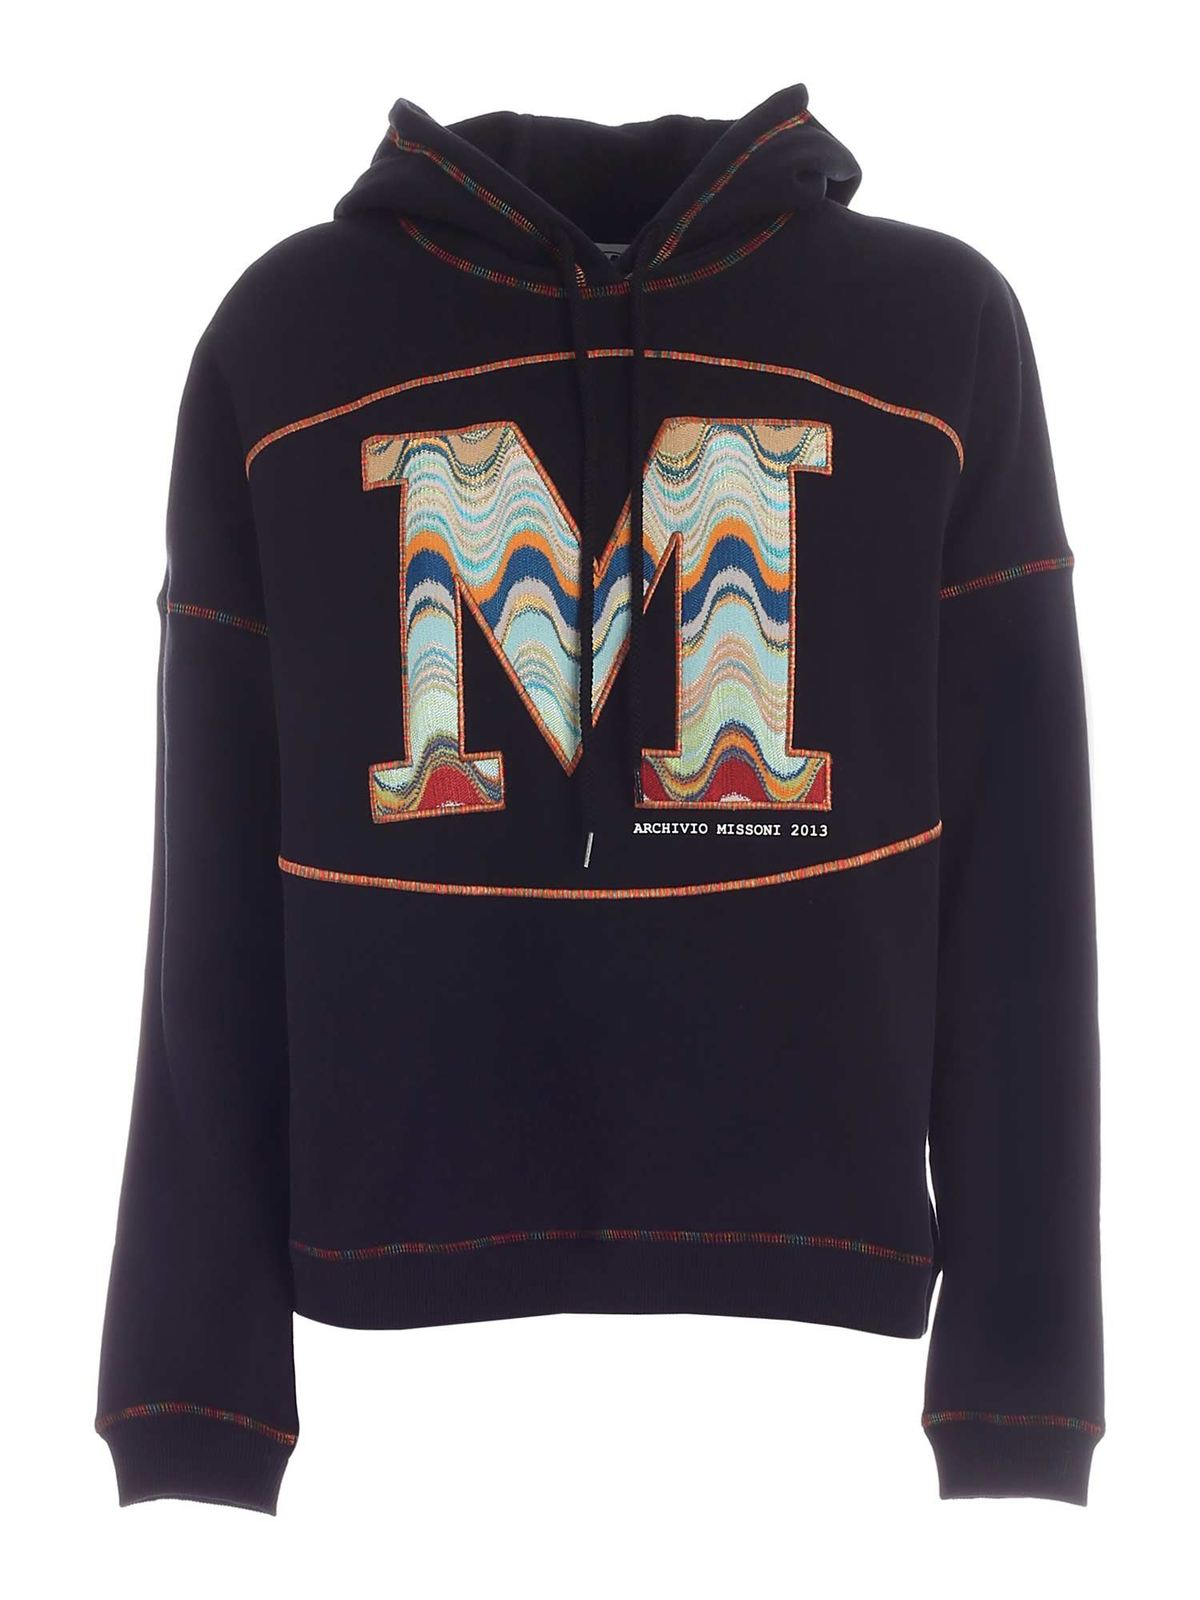 Missoni LOGO EMBROIDERY SWEATSHIRT IN BLACK